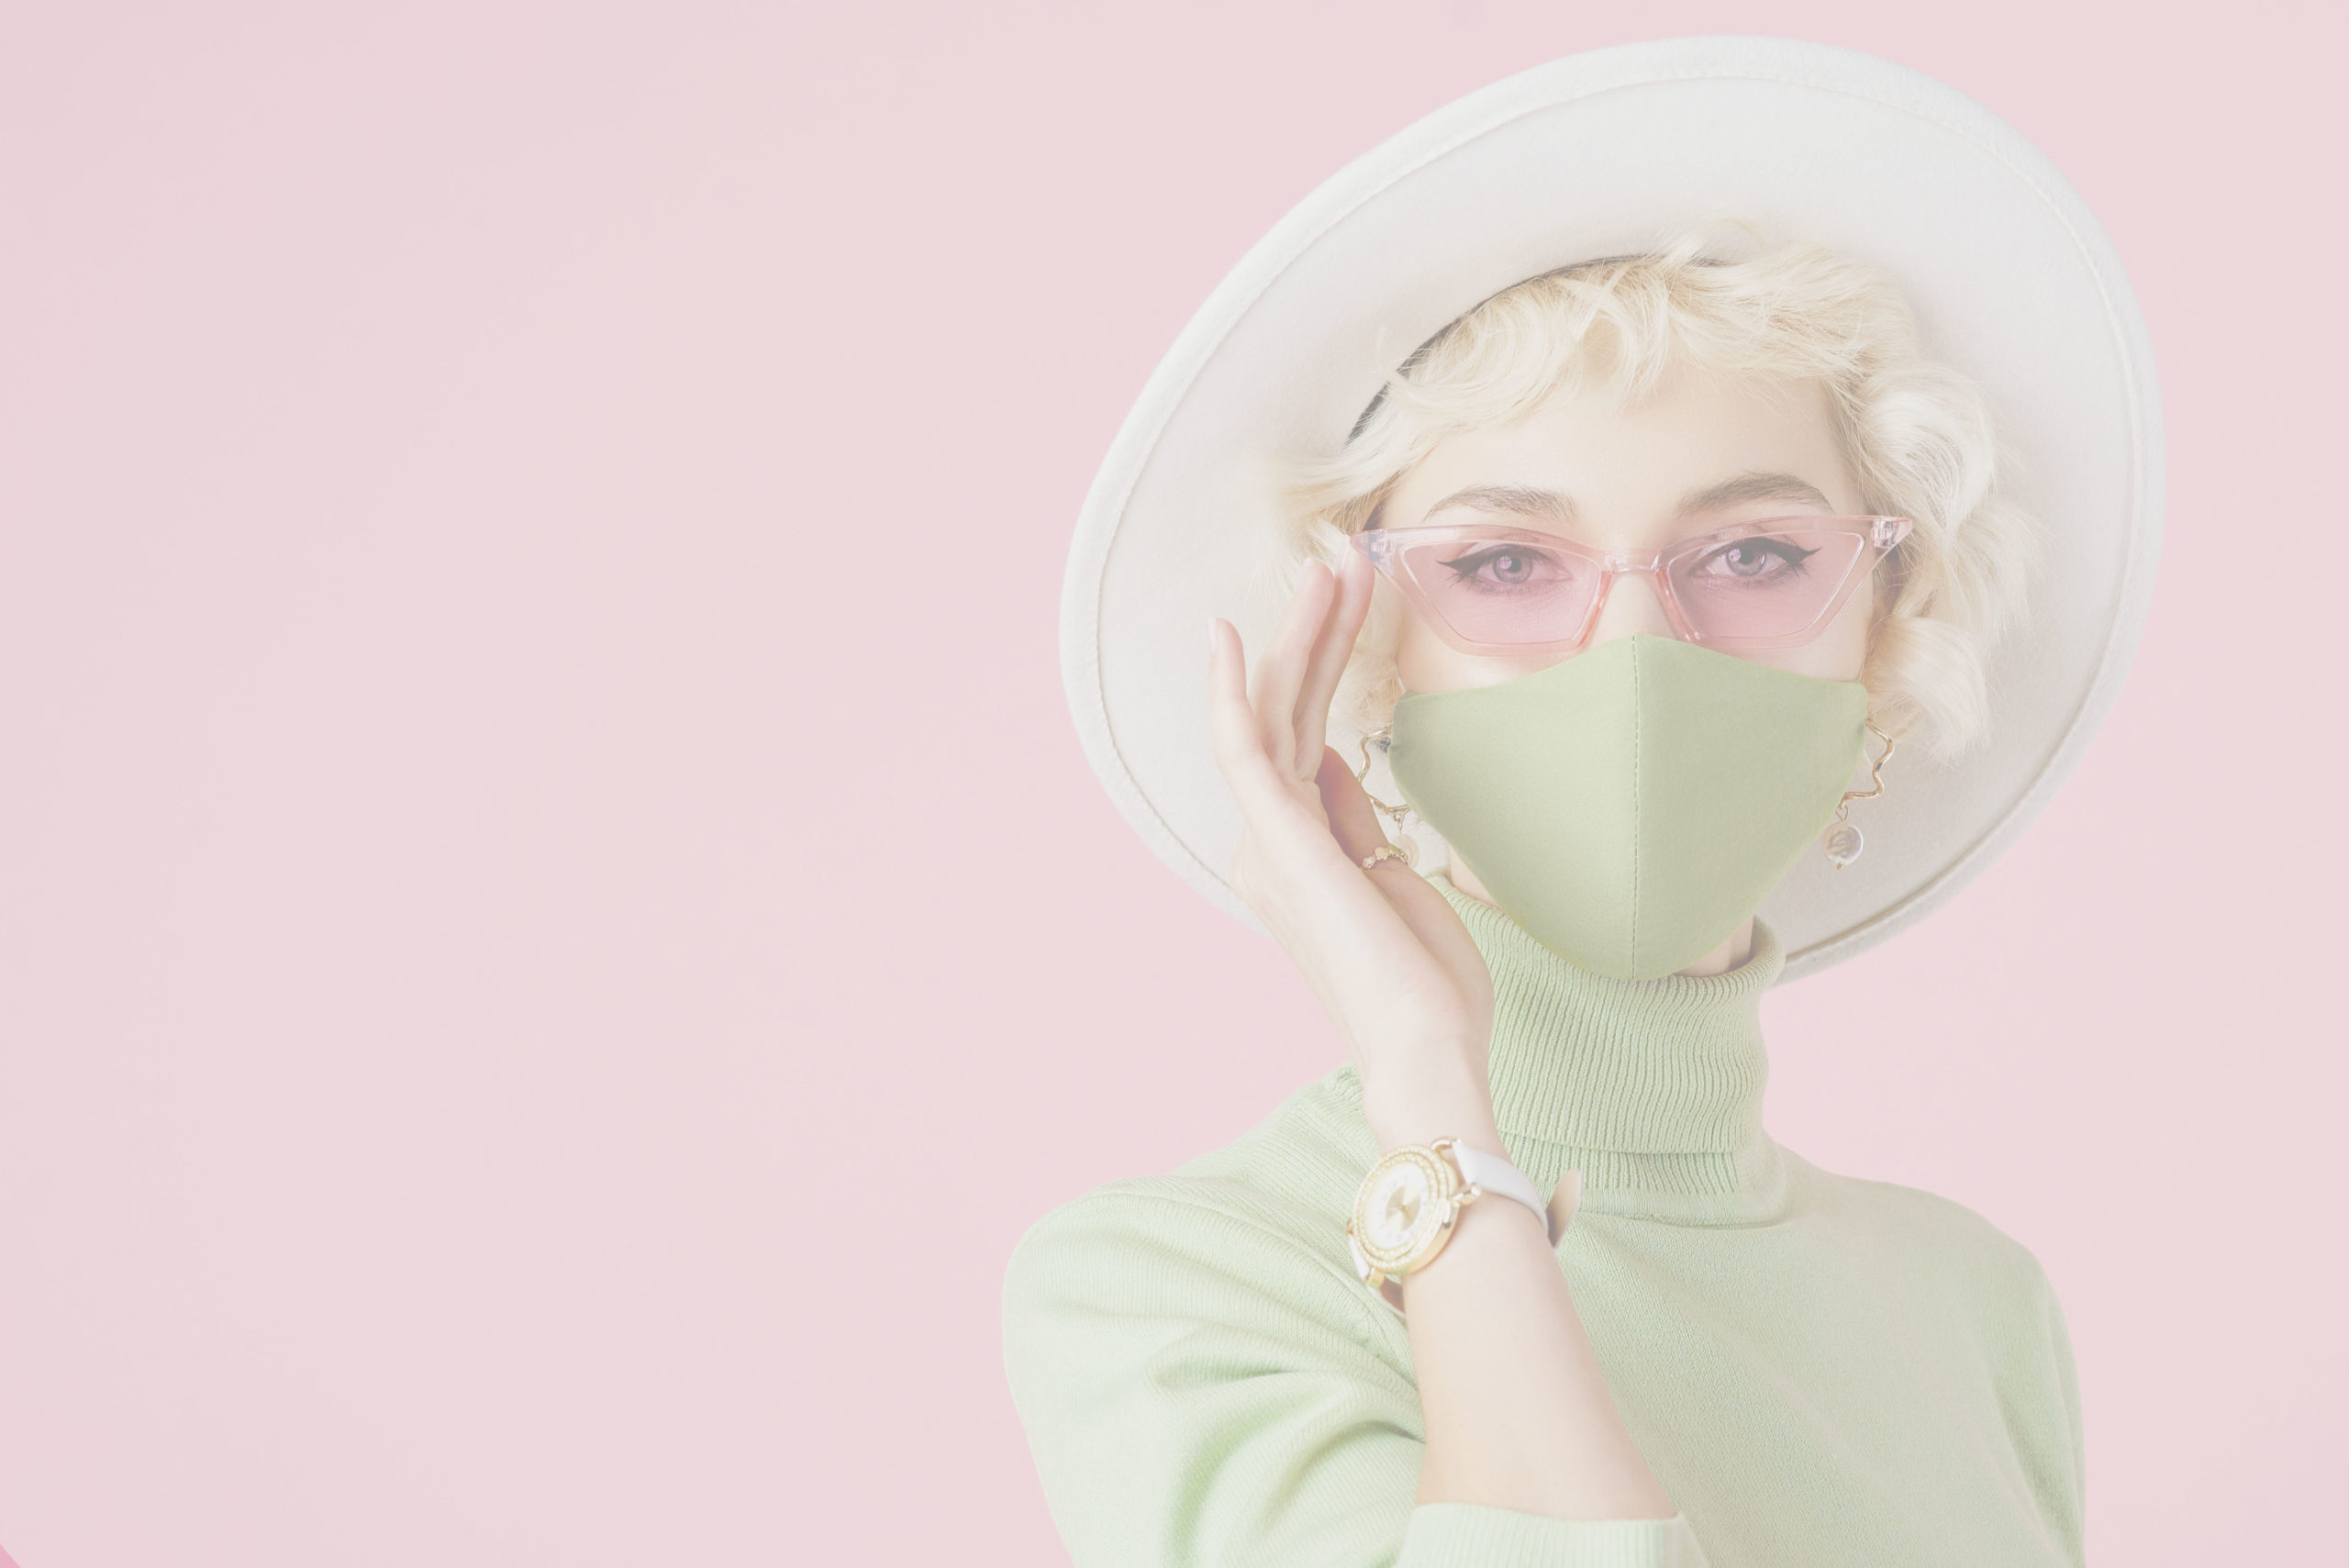 Face Mask Safety Certified Artists Beaux Beauty on demand app Woman wearing trendy fashion outfit during quarantine of coronavirus outbreak. Model dressed protective stylish handmade face mask, pink sunglasses, white hat, wrist watch, green mint color turtleneck